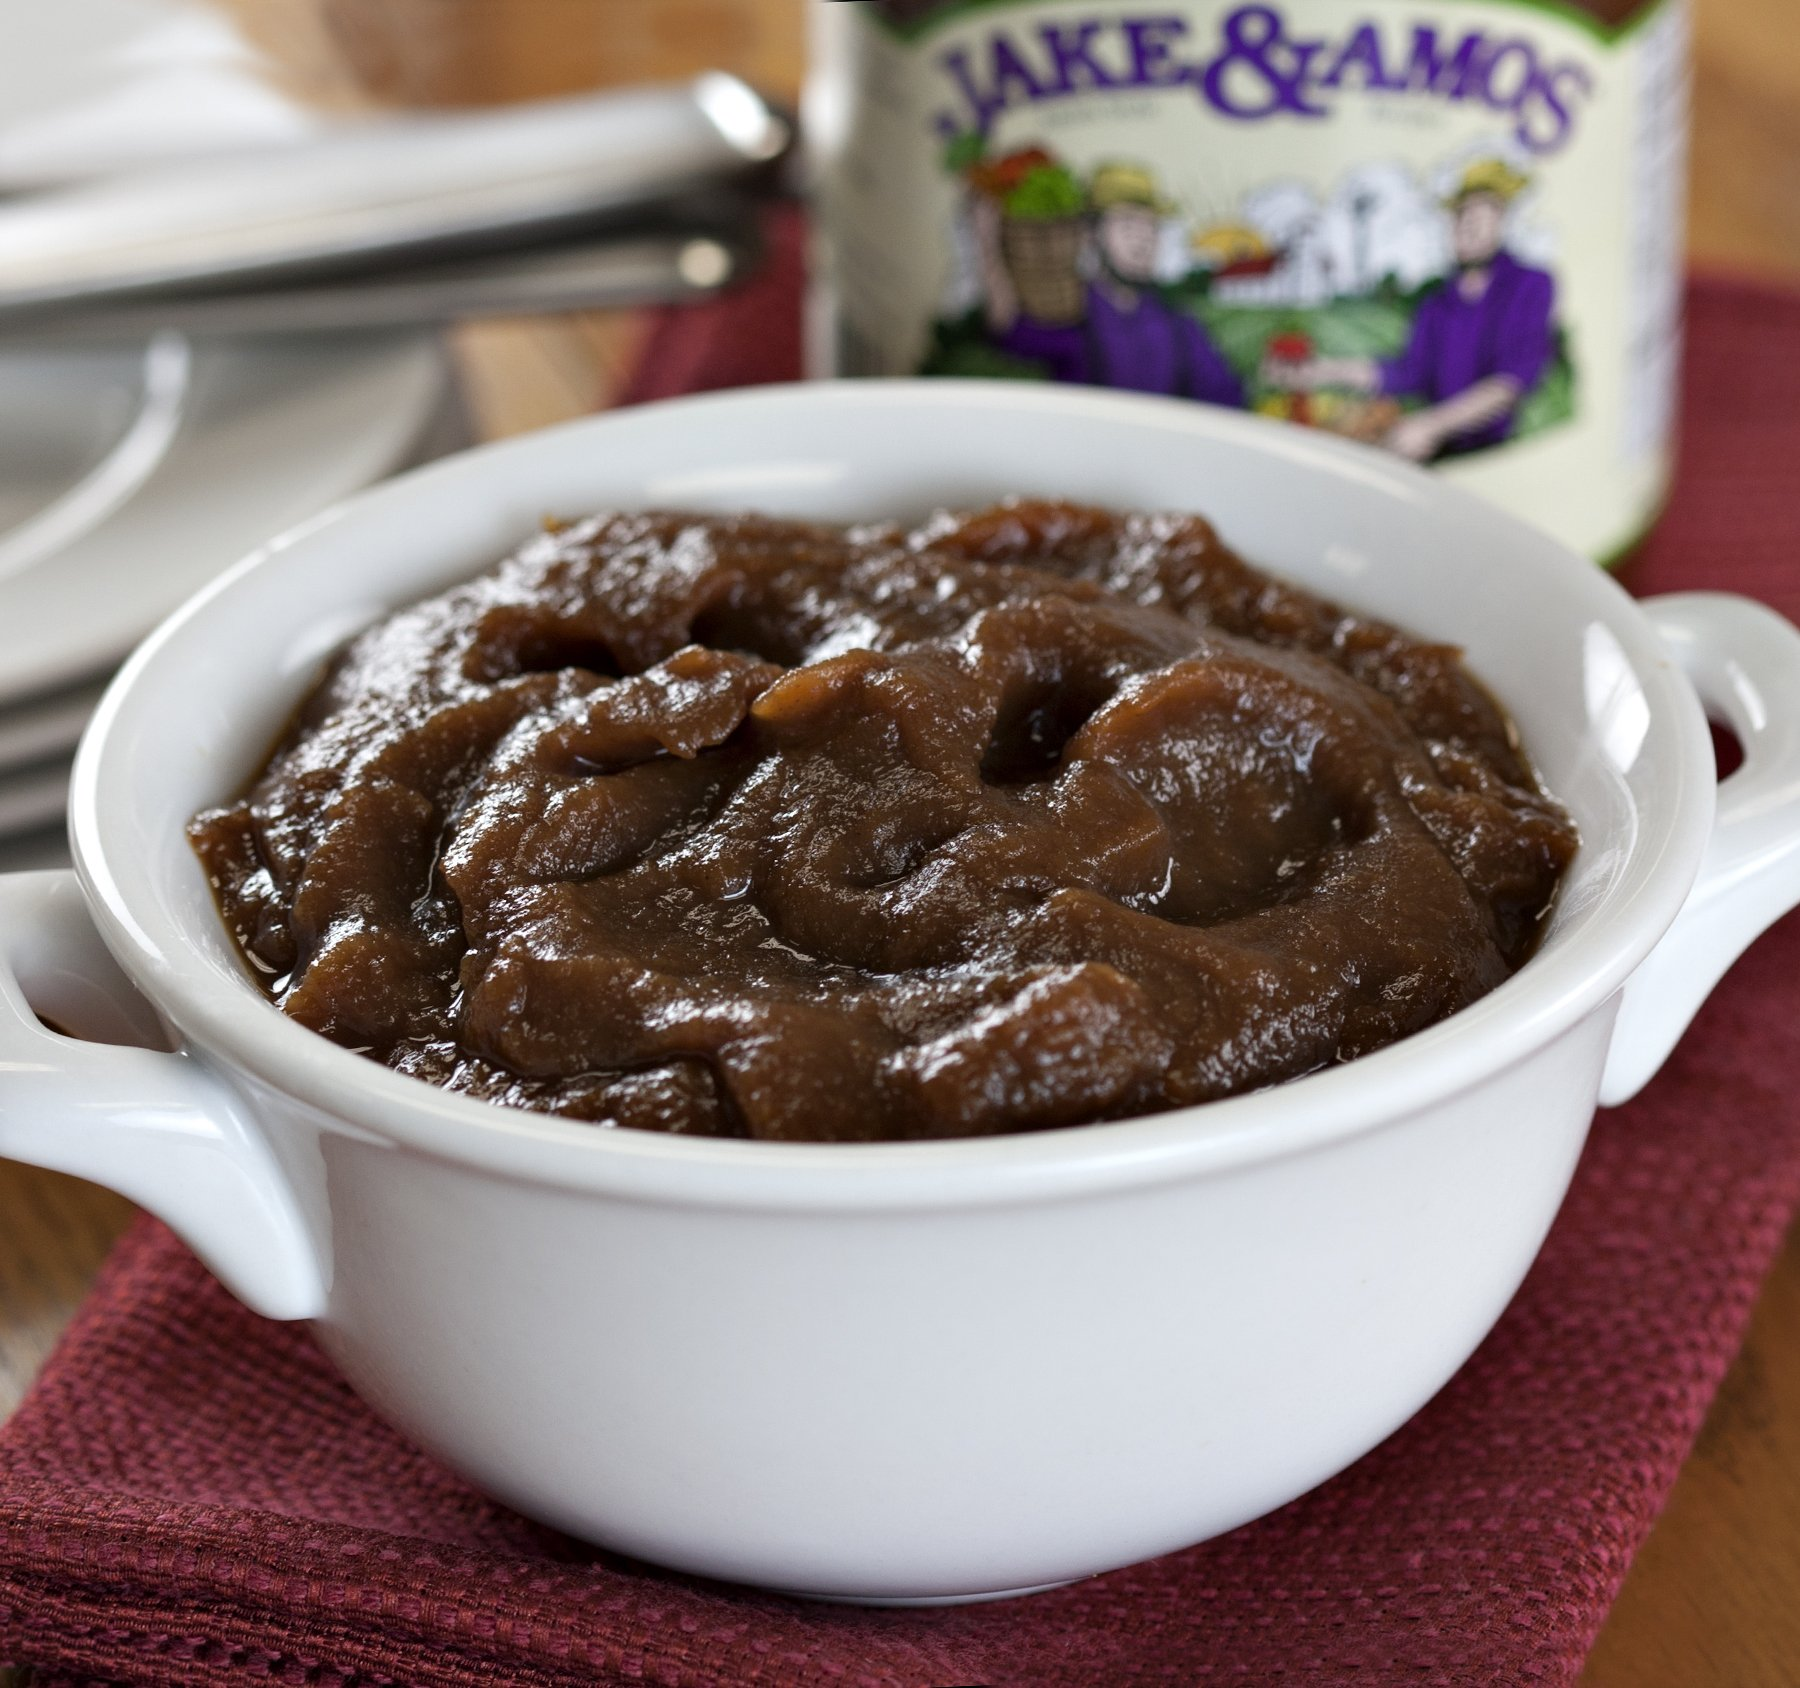 Jake & Amos Apple Butter With Spice No Sugar 16 oz. (3 Jars) by Jake & Amos® (Image #2)